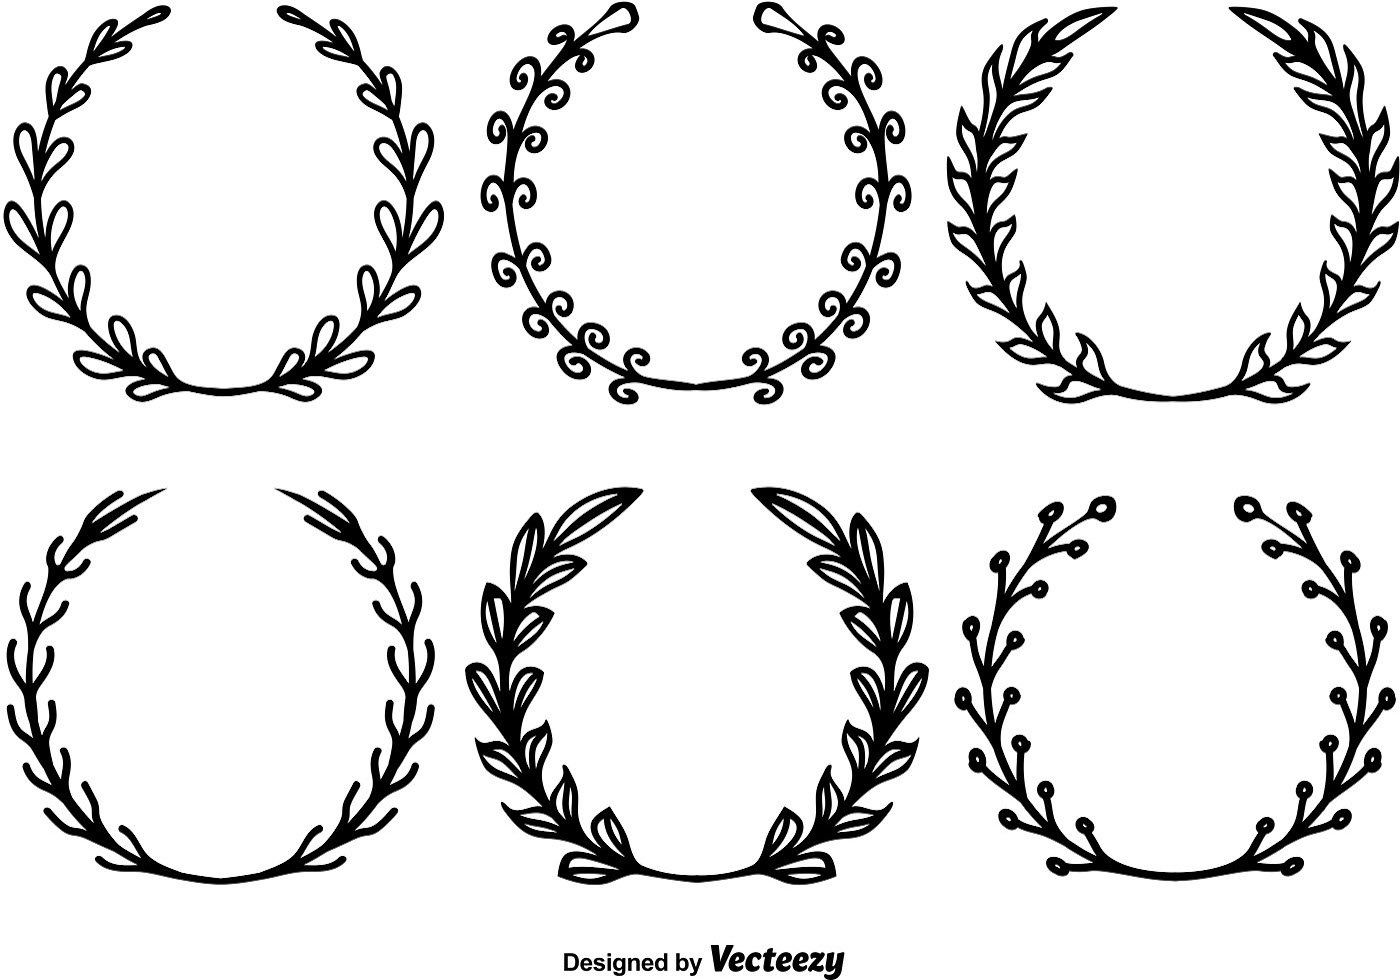 Circle Floral Borders Sketch Frames Hand Drawn On White